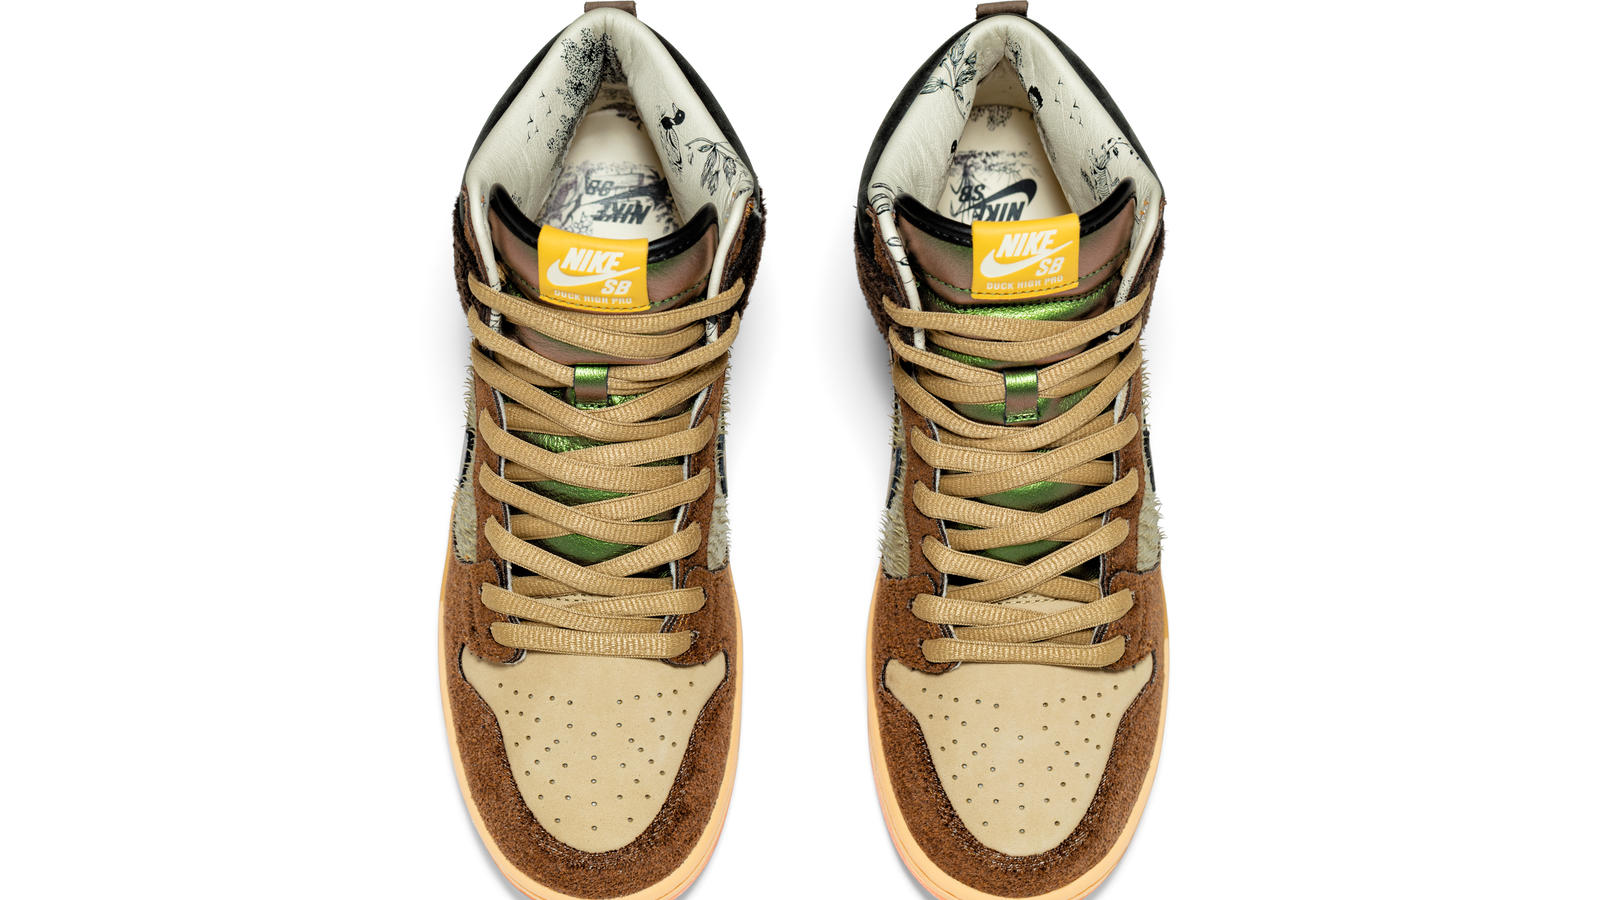 Concepts x Nike SB Dunk High TurDUNKen Official Images 5